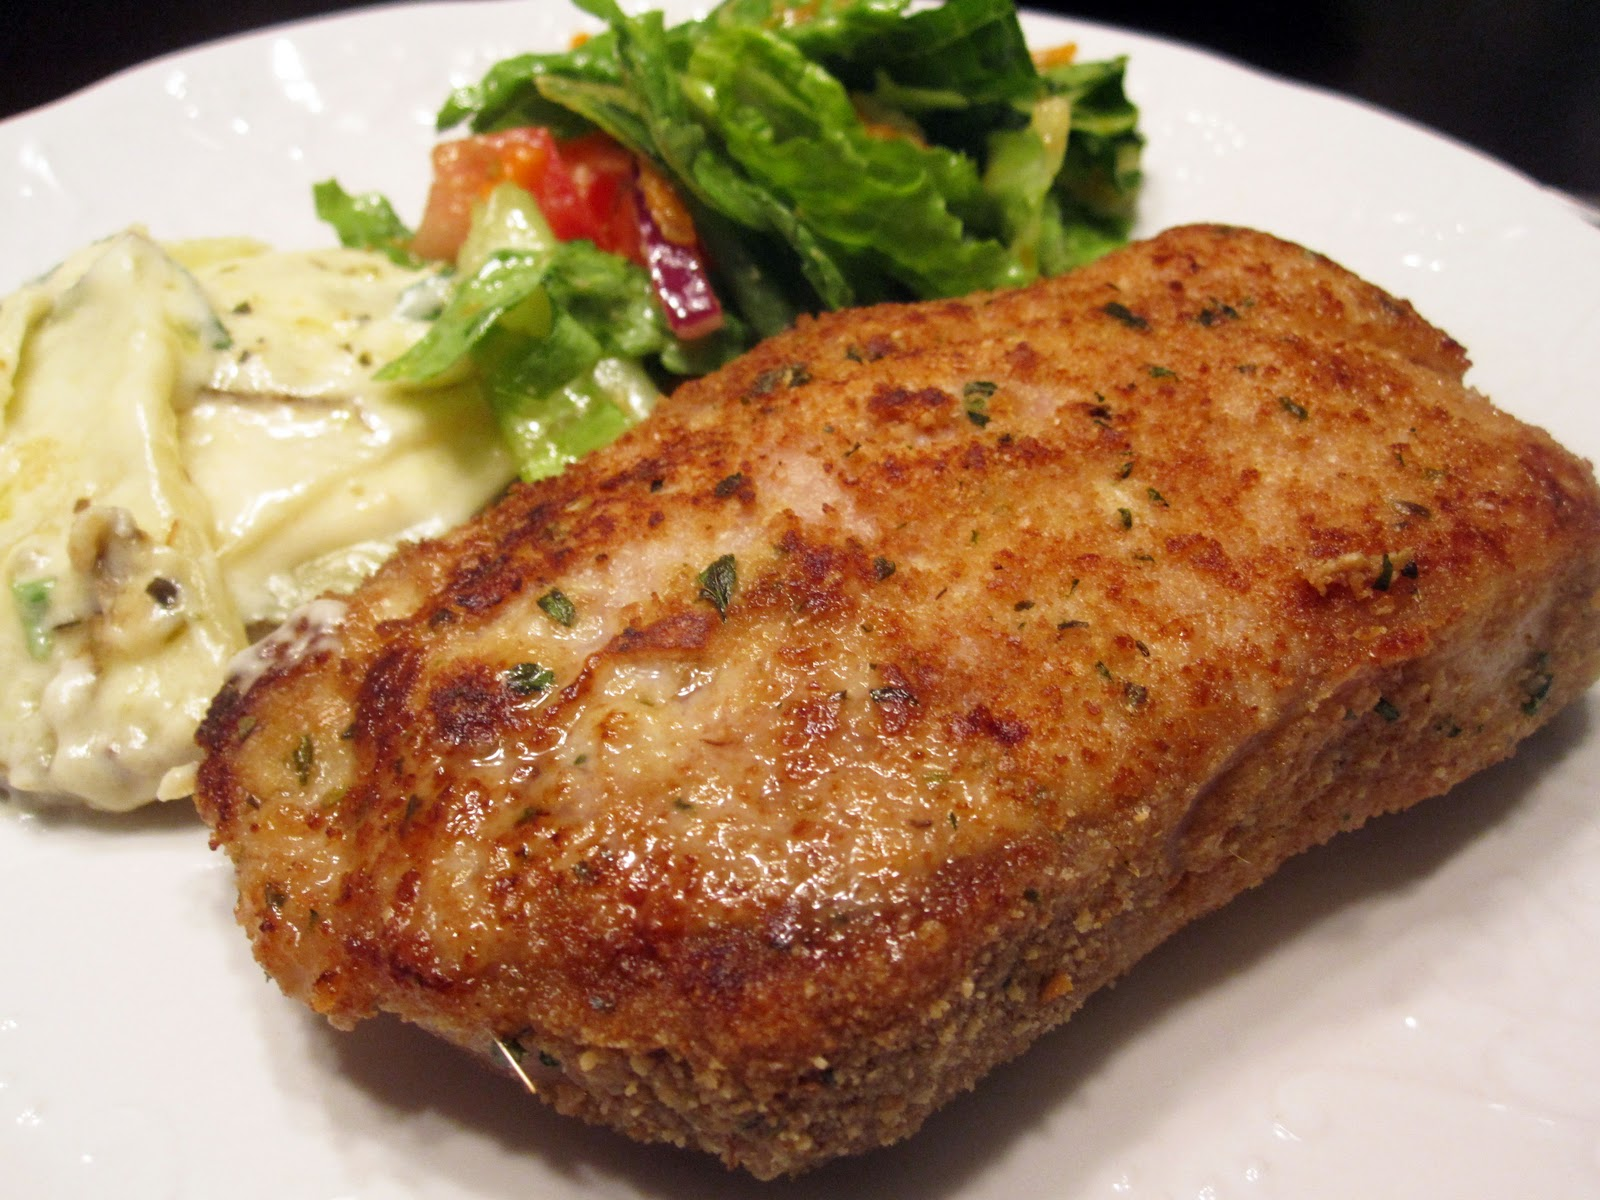 ... Putzing Around the Kitchen: Baked Italian-Style Breaded Pork Chops